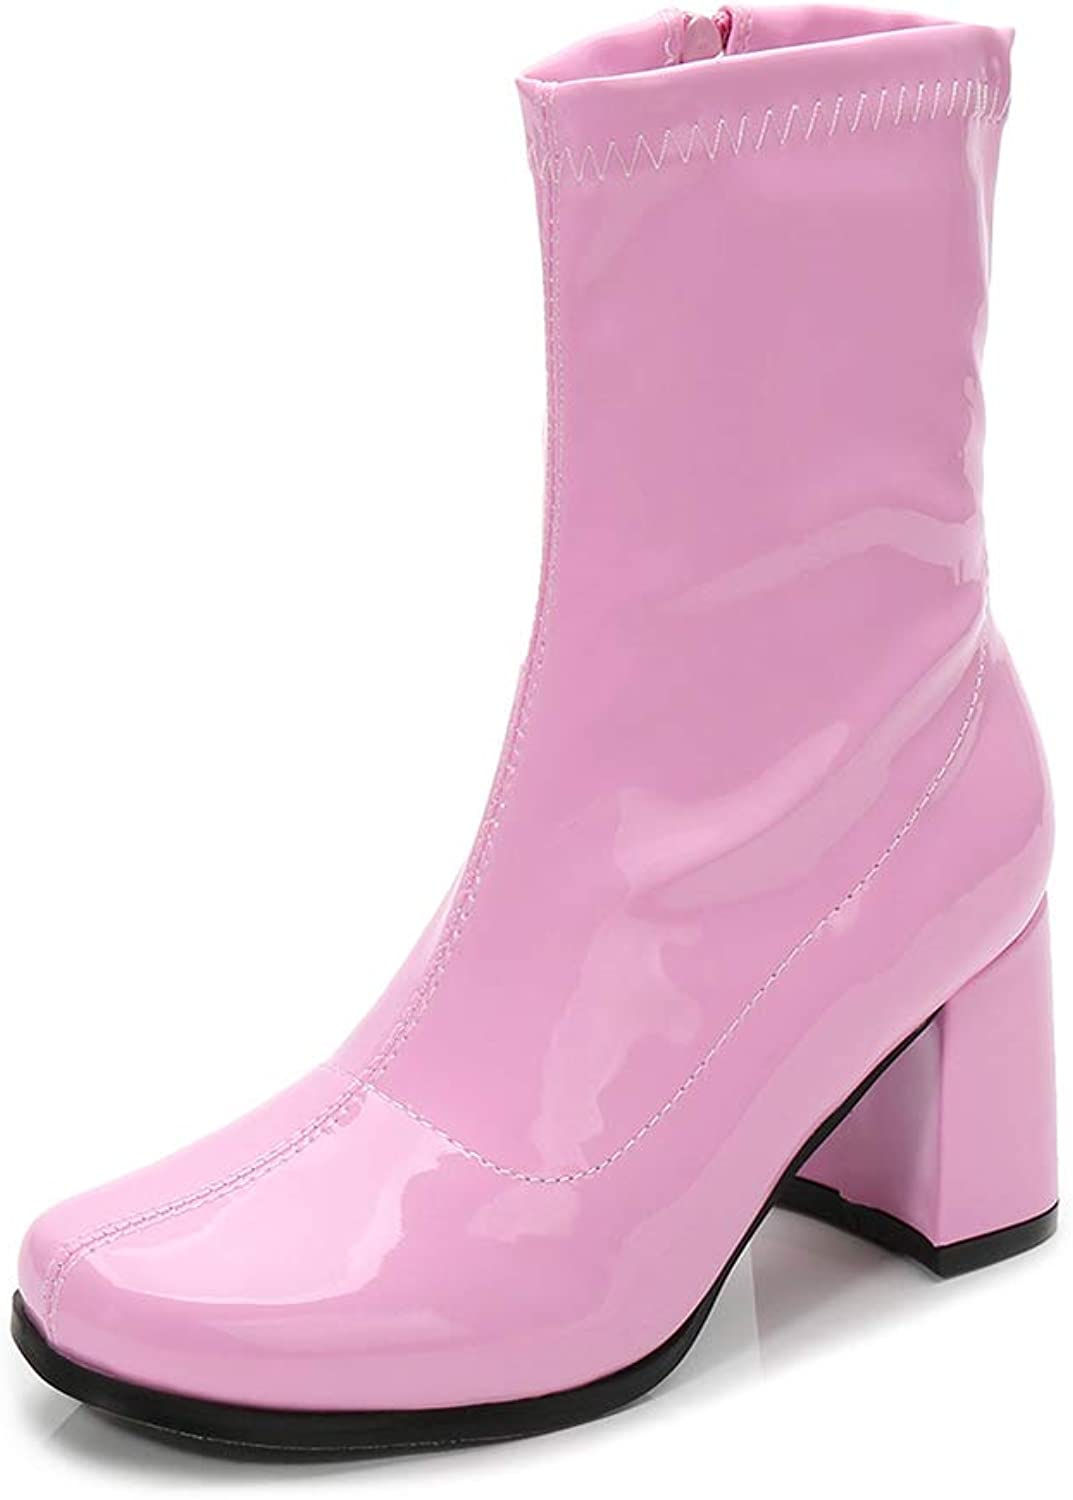 LIURUIJIA Women's Go Go Boots Over The Knee Block Heel Zipper Boot Pink-36-GM-SC